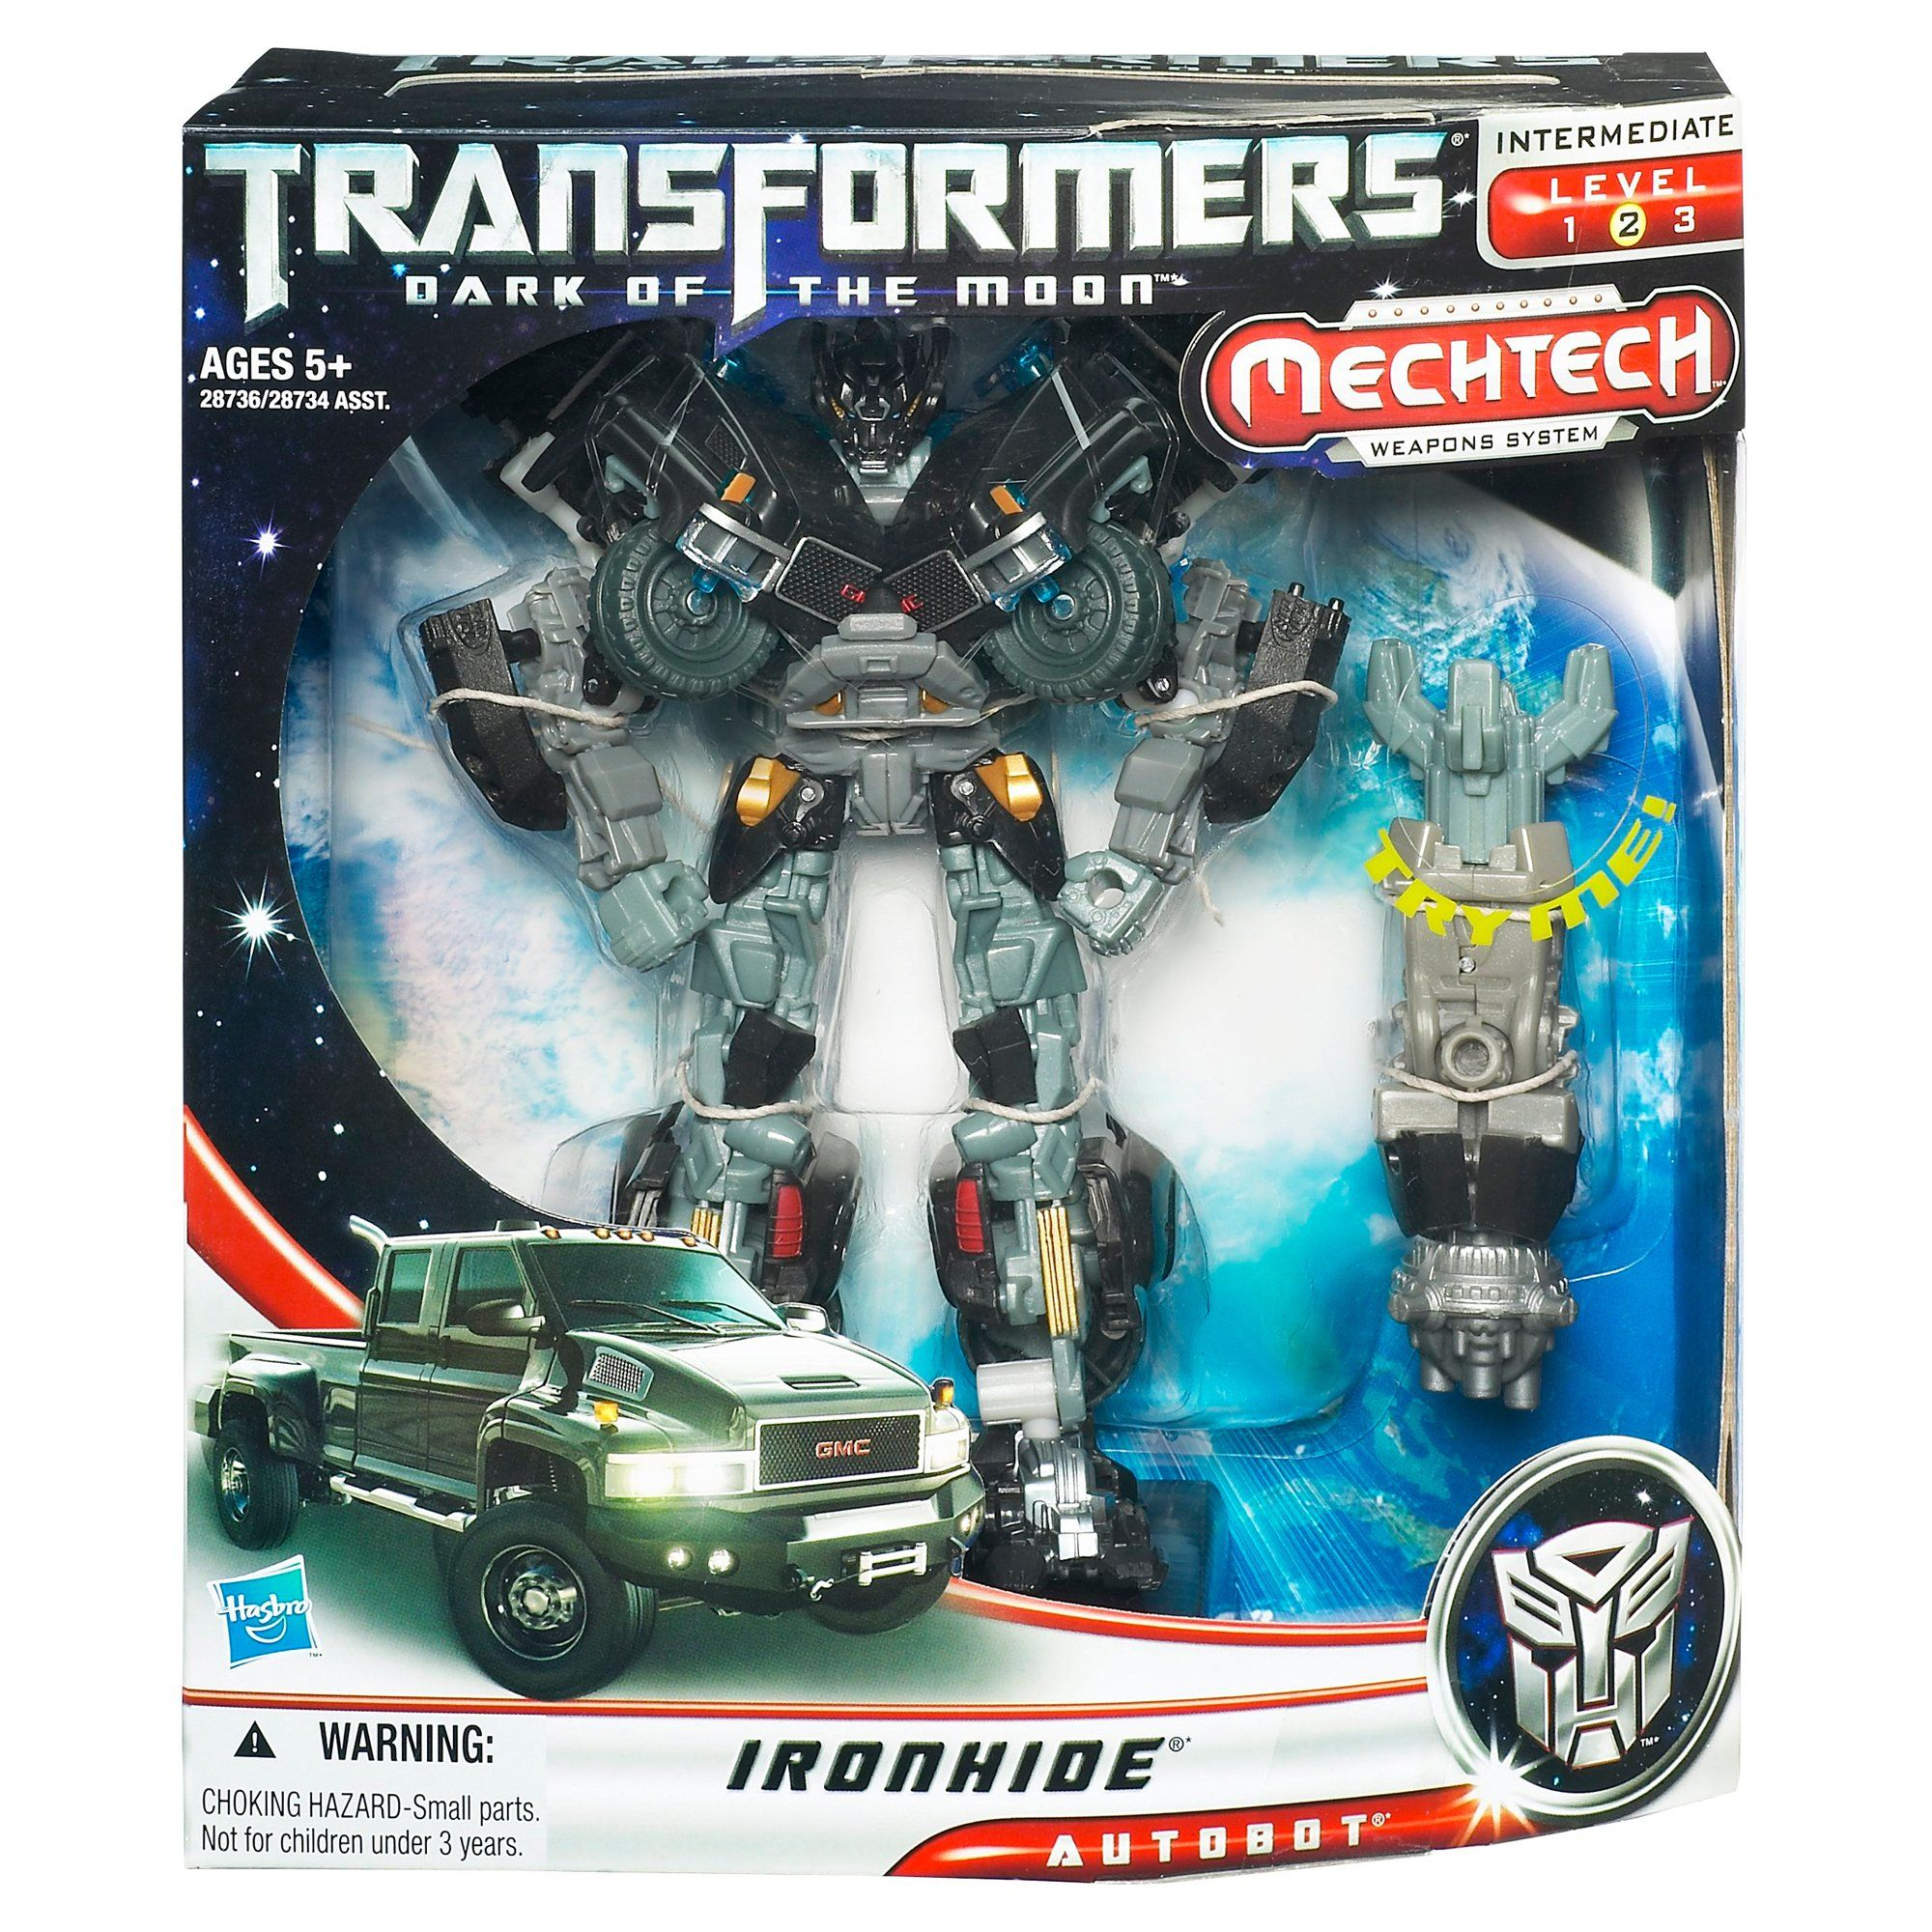 Transformers Dark of the Moon IRONHIDE Complete Cyberverse Dotm